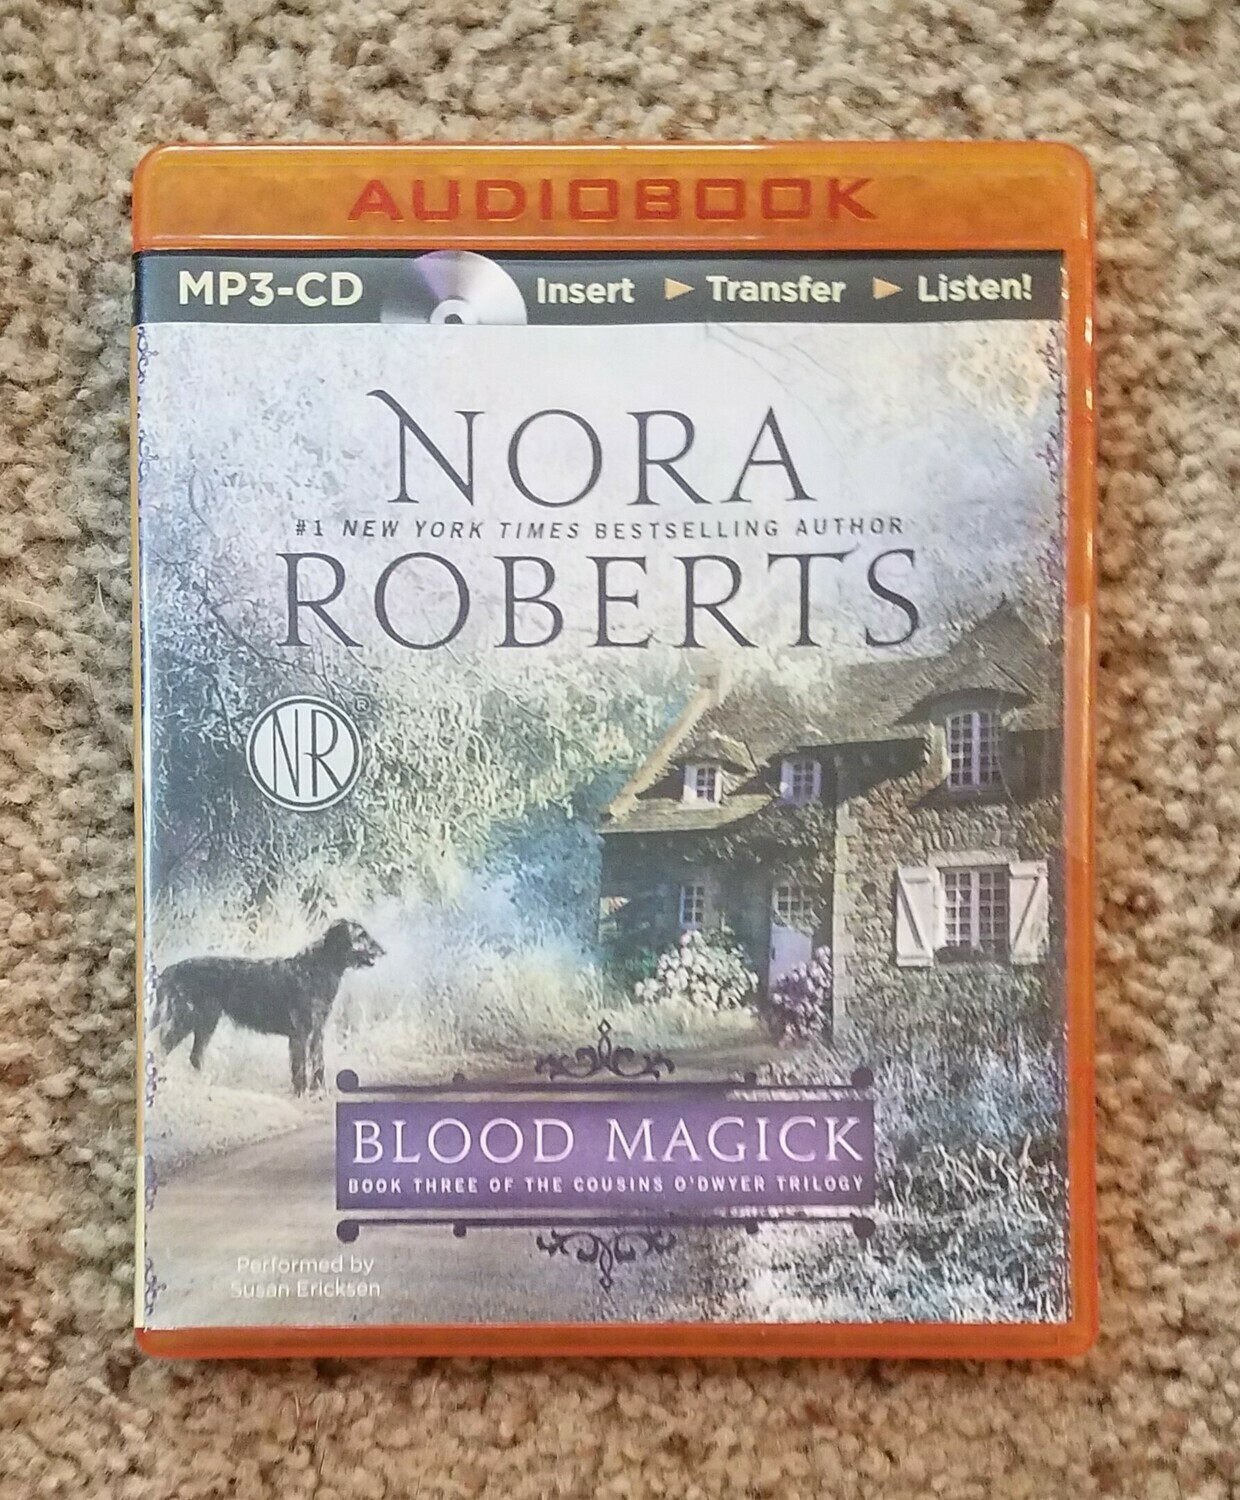 Blood Magick by Nora Roberts - Audiobook CD